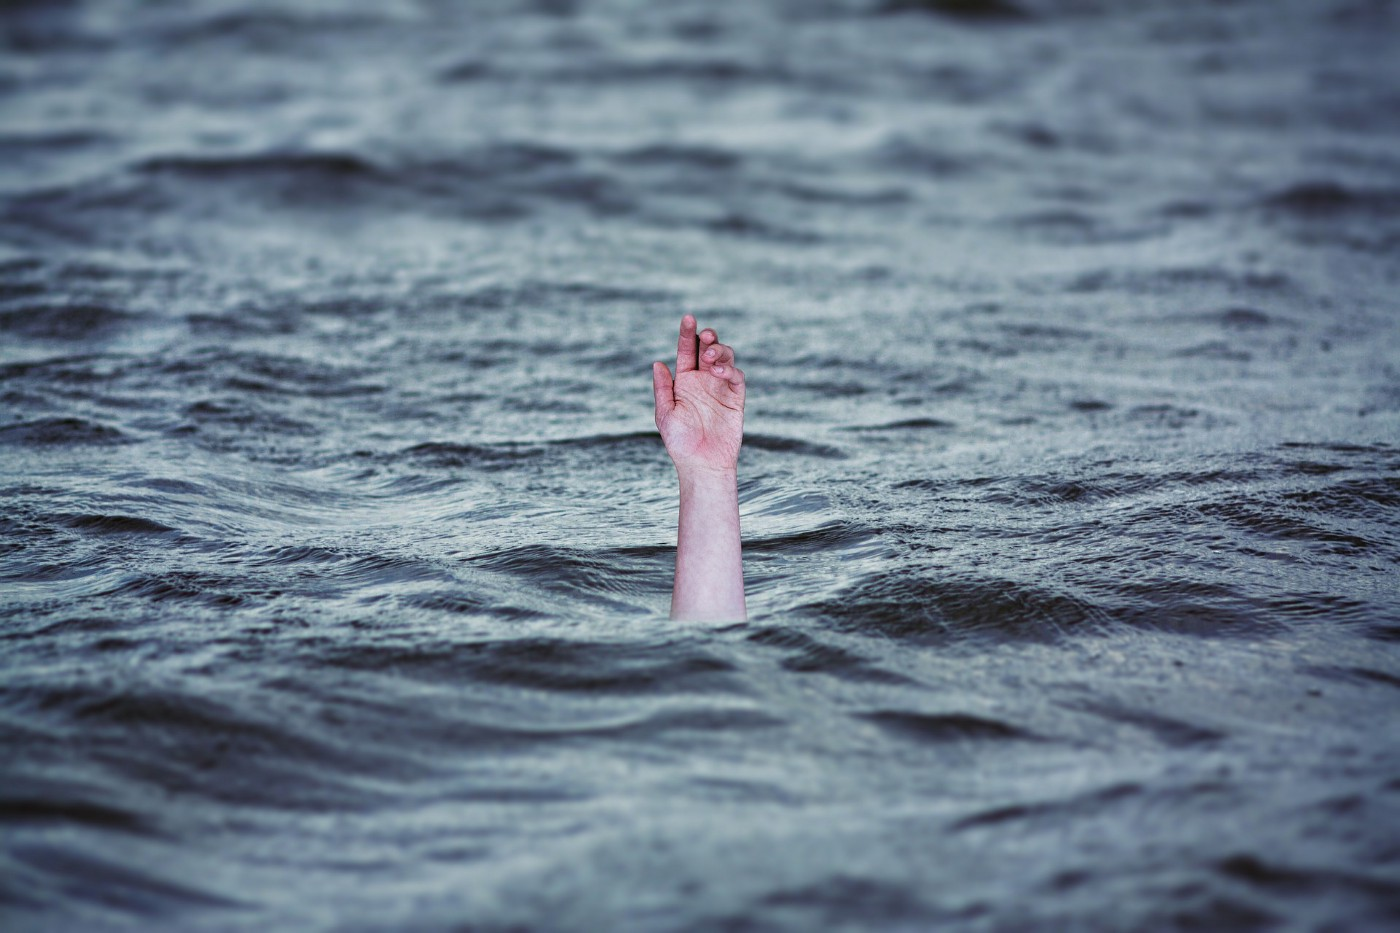 Photo of a hand reaching up out of the blue sea, as if someone is drowning.